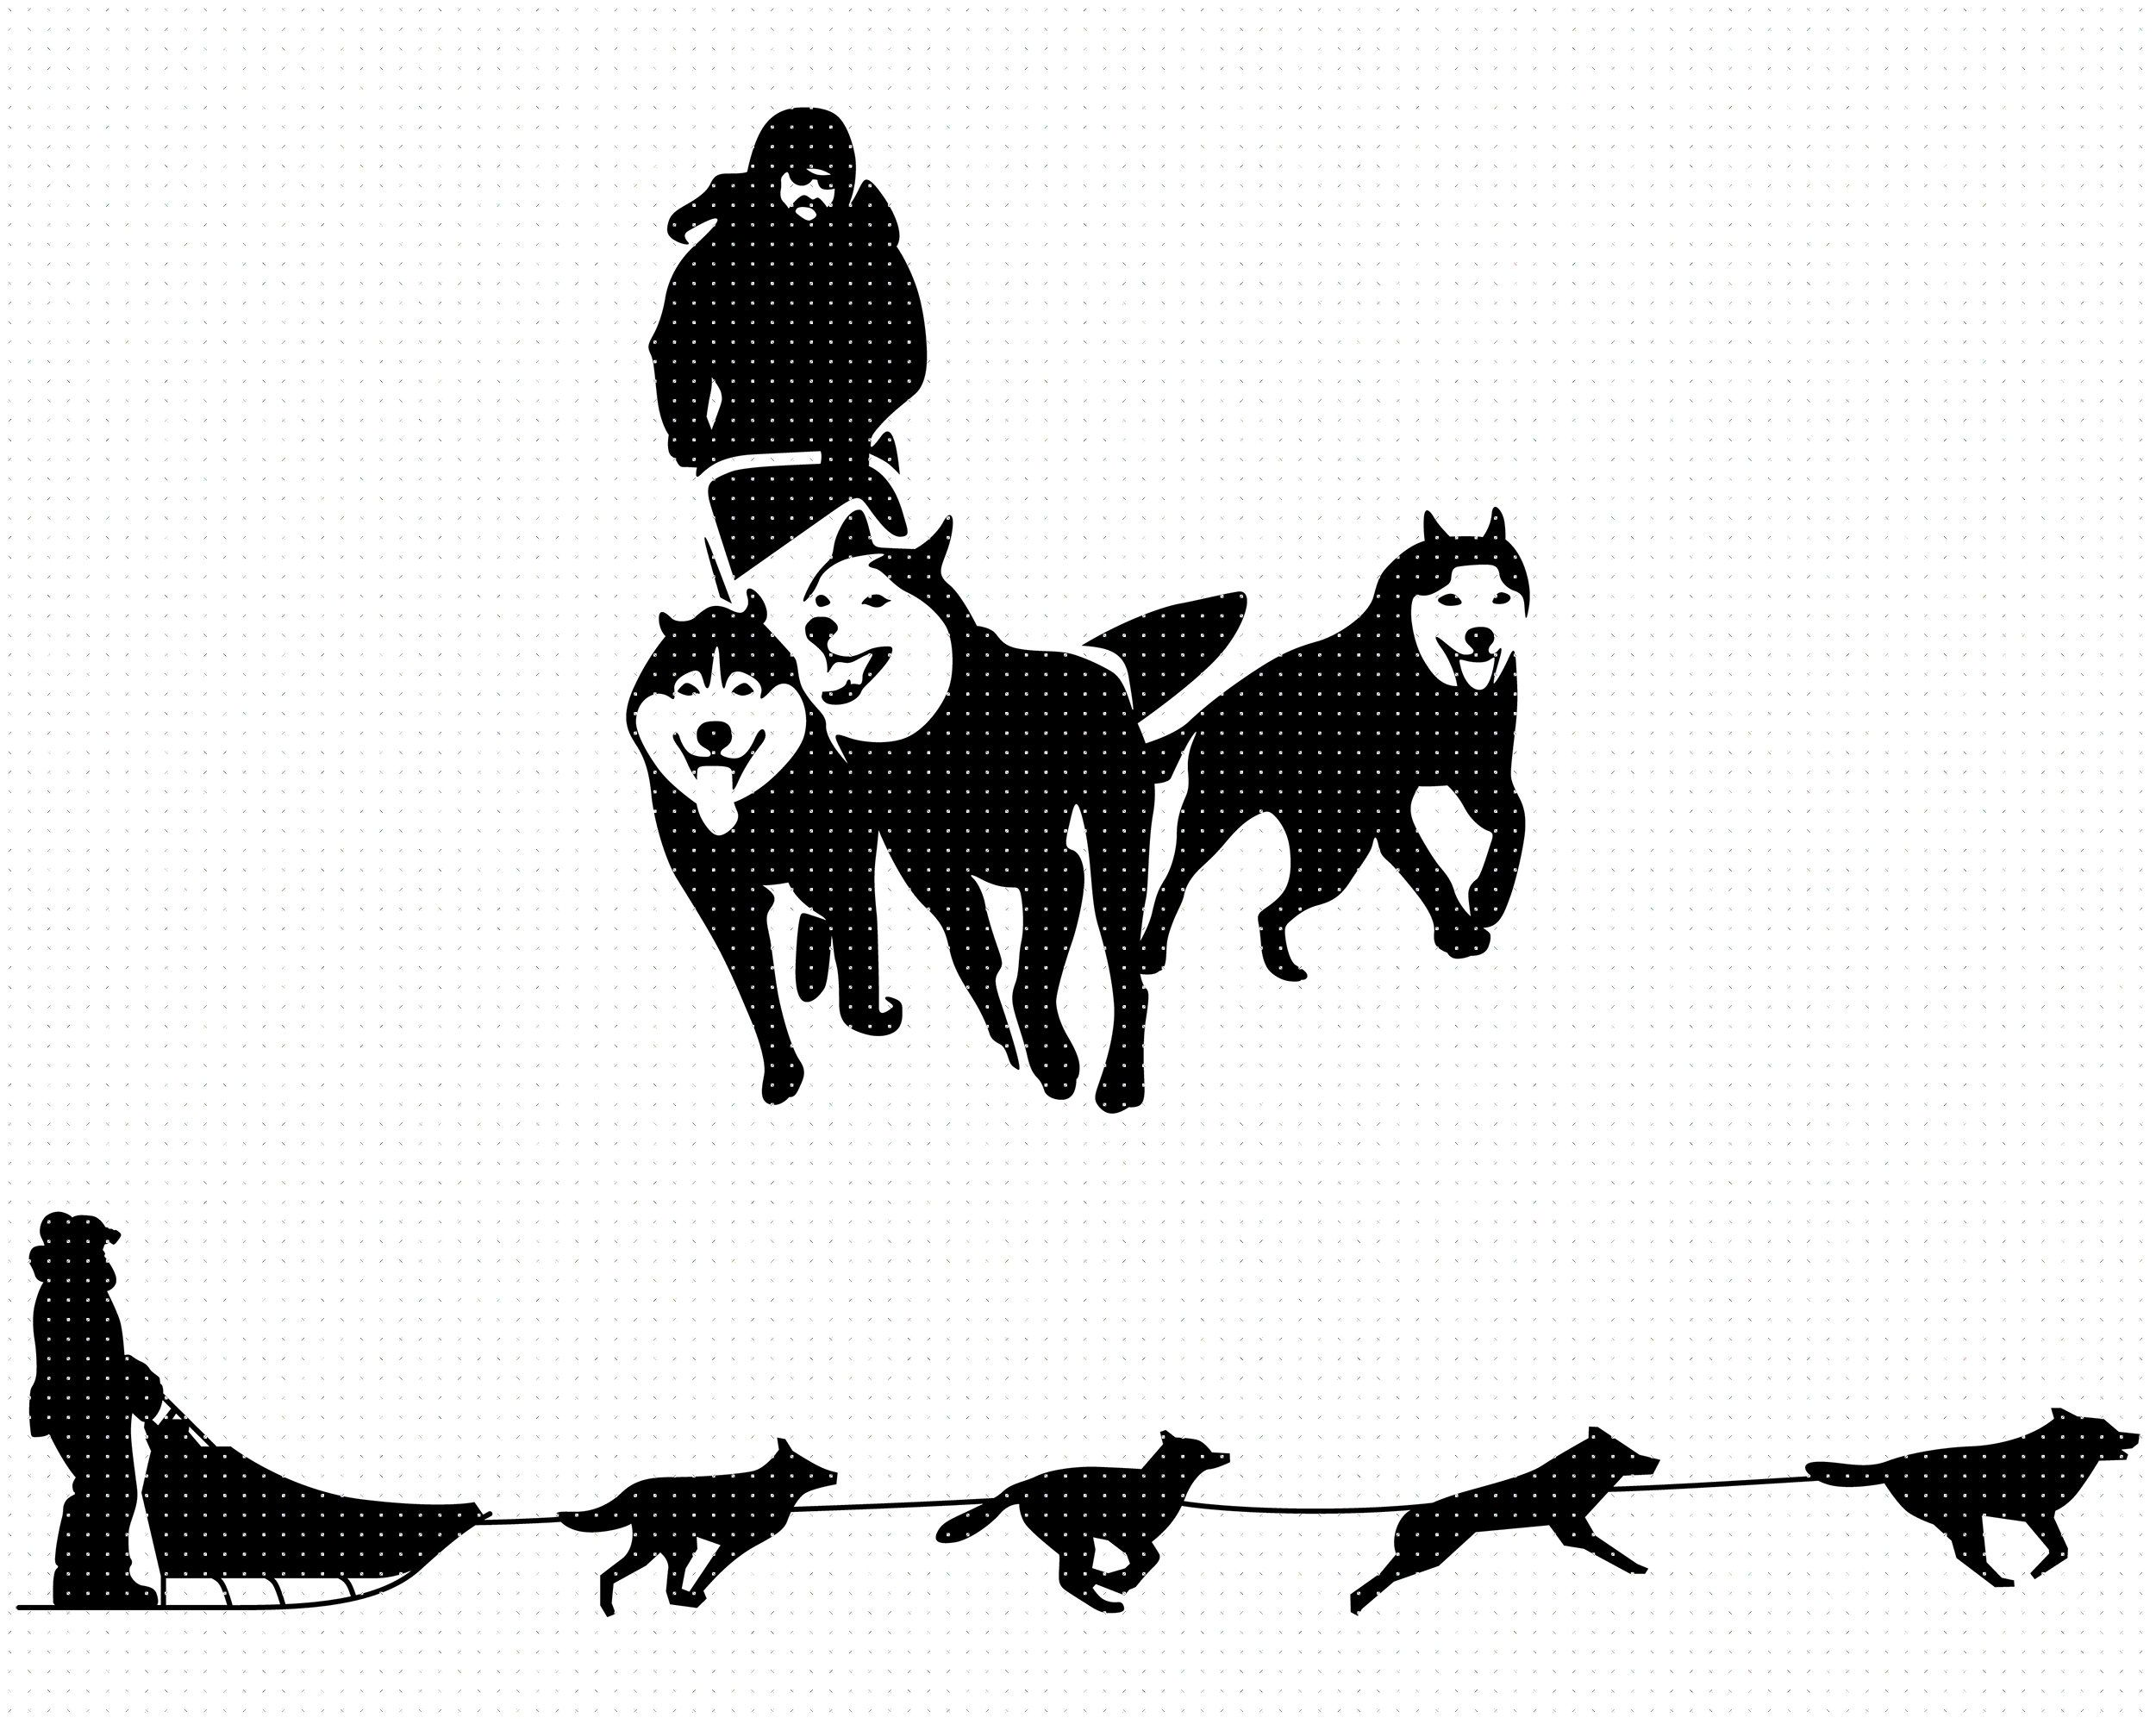 Pug Dog Silhouette Animal Animals Breed Png And Vector With Transparent Background For Free Download Dog Silhouette Dog Vector Pugs